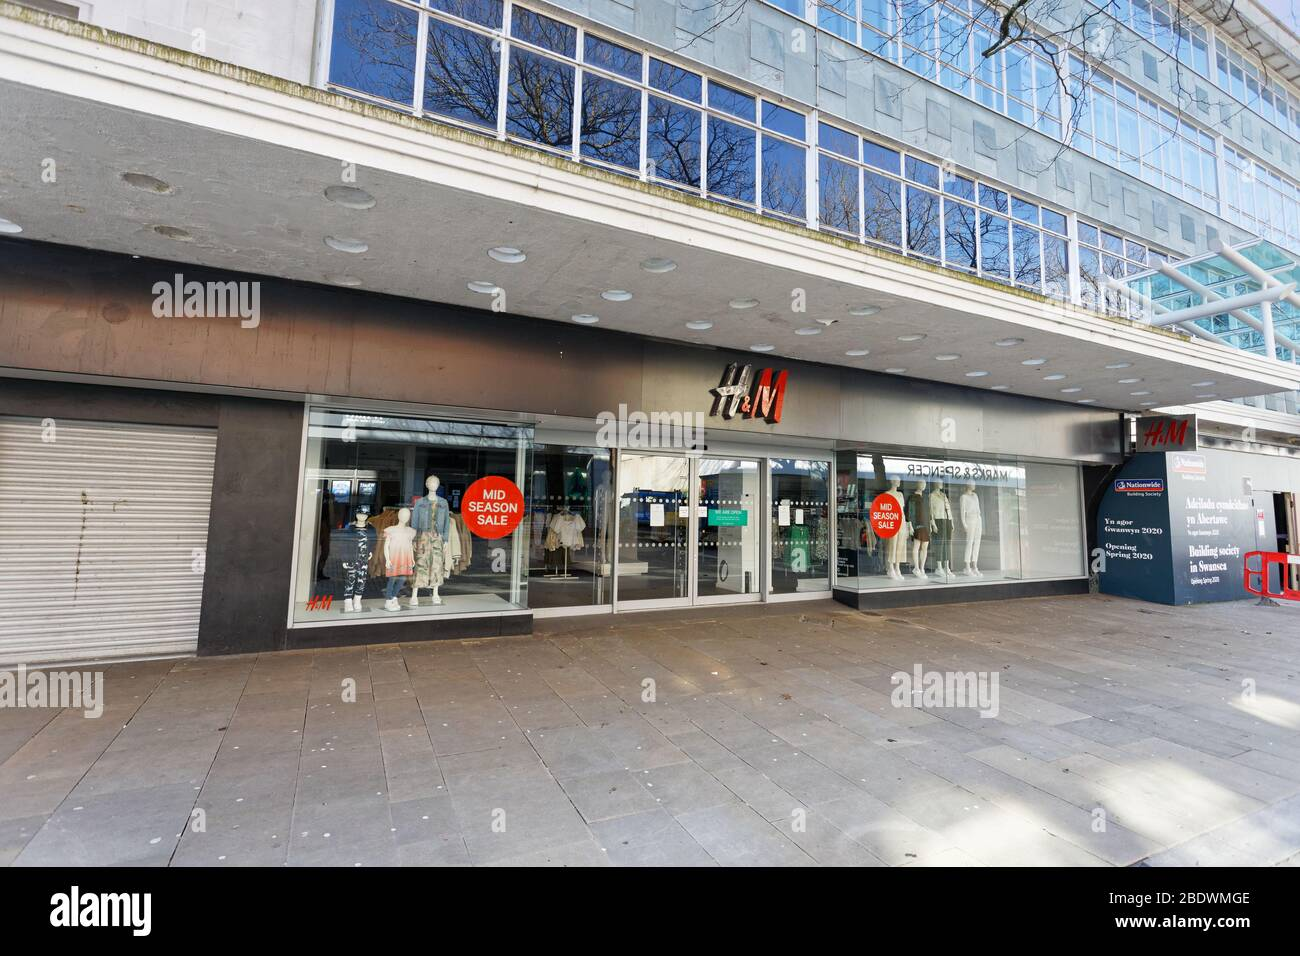 Page 2 H M Store High Resolution Stock Photography And Images Alamy